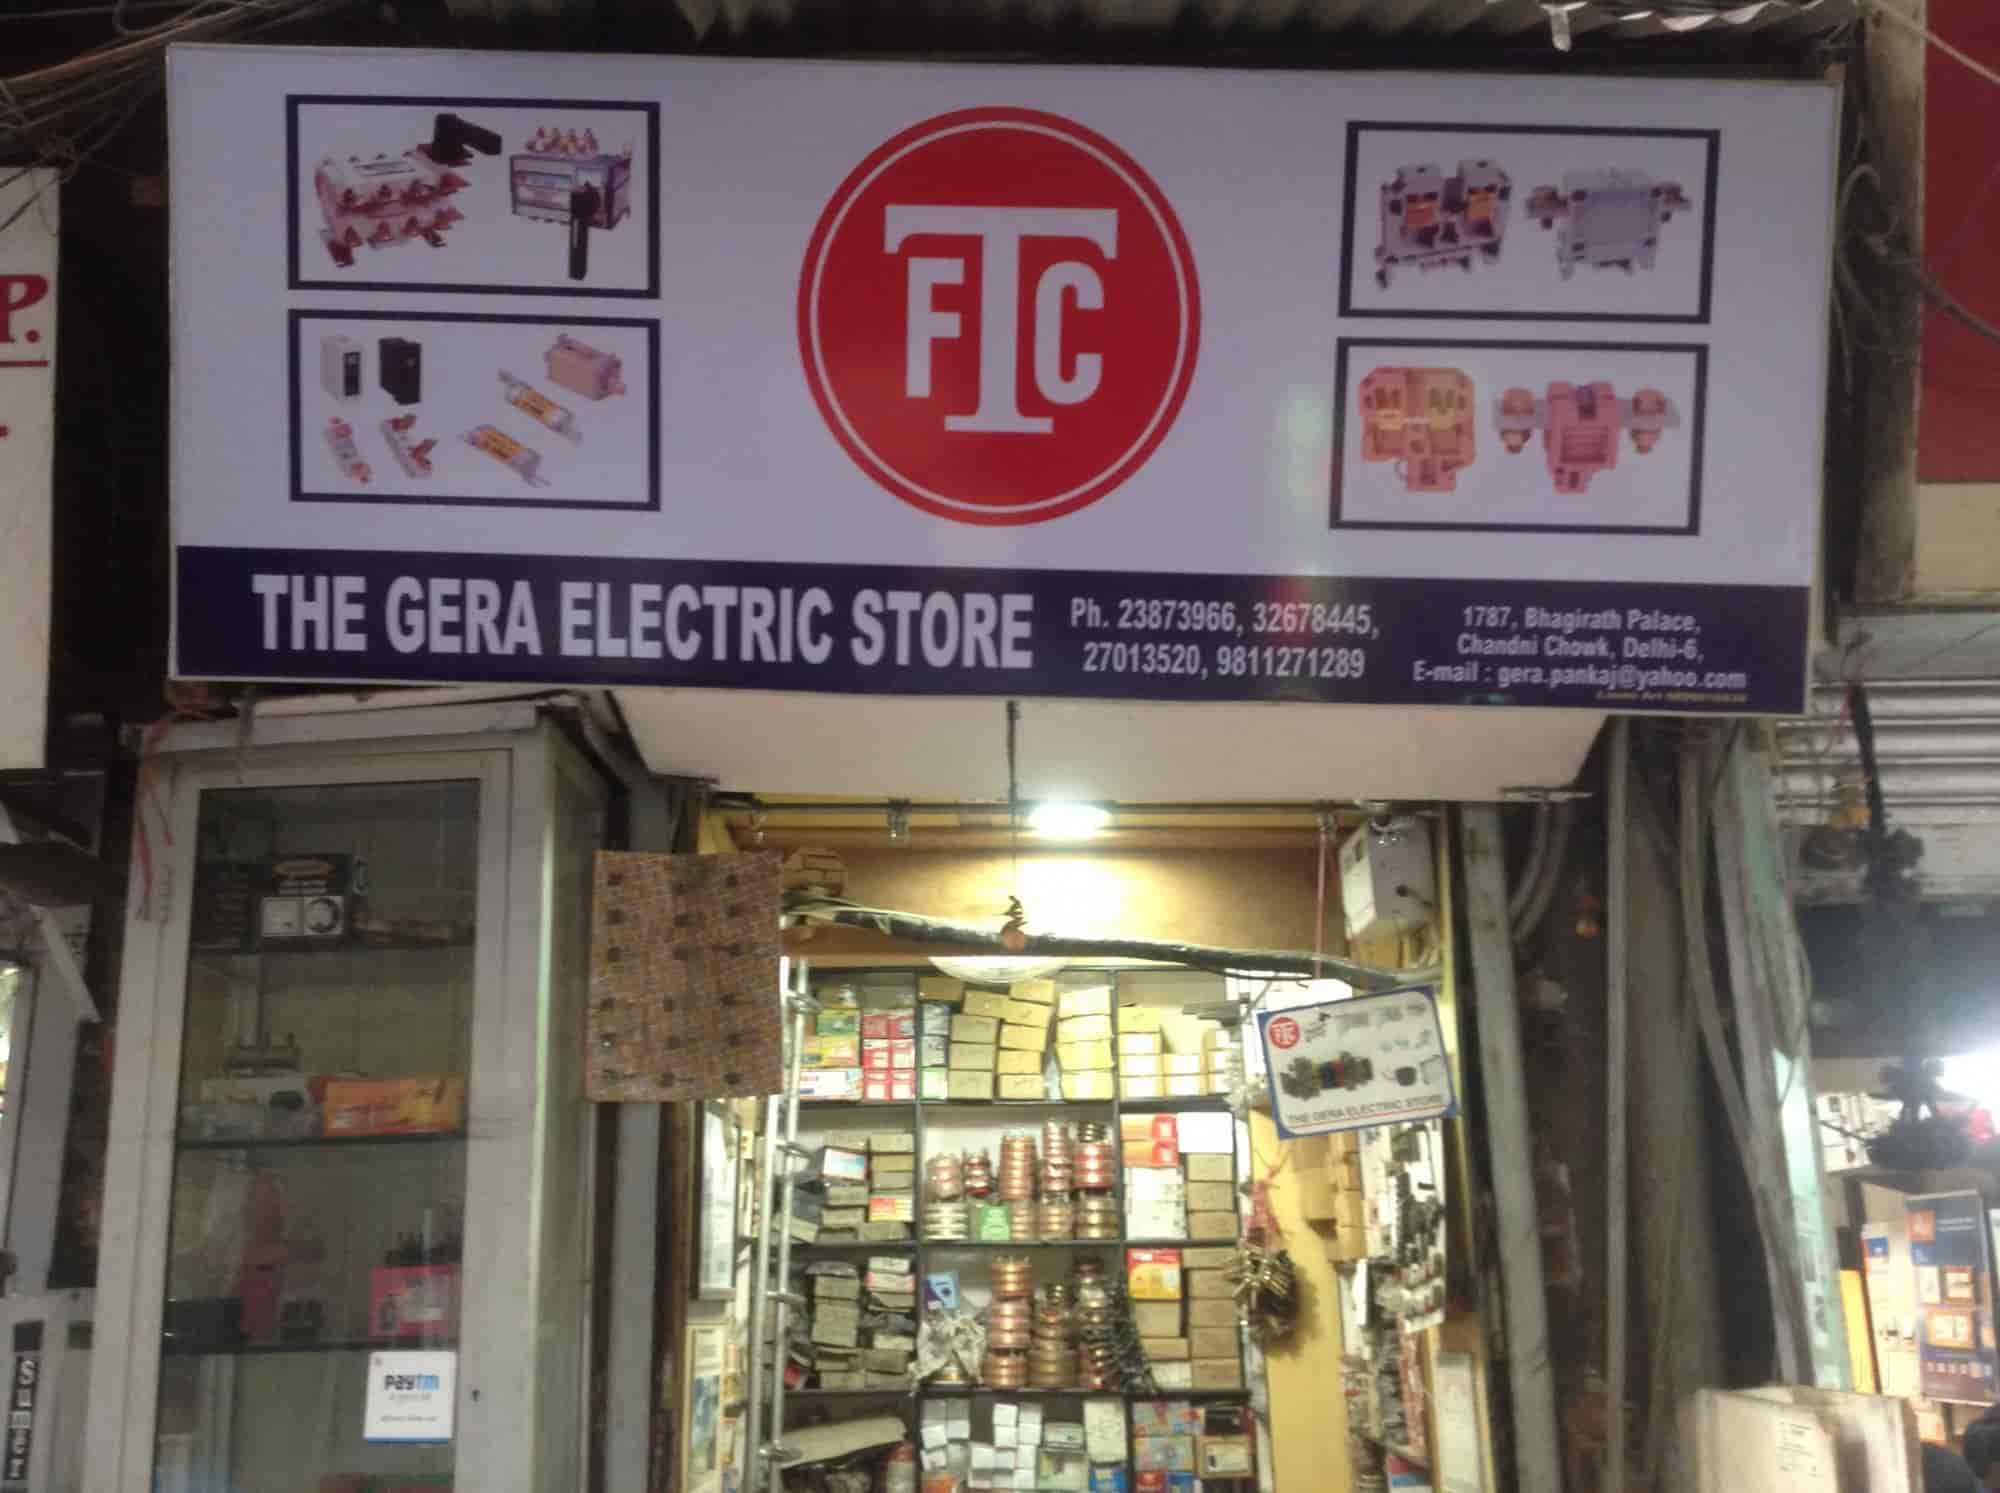 The Gera Electric Store, Bhagirath Palace - Electric Motor